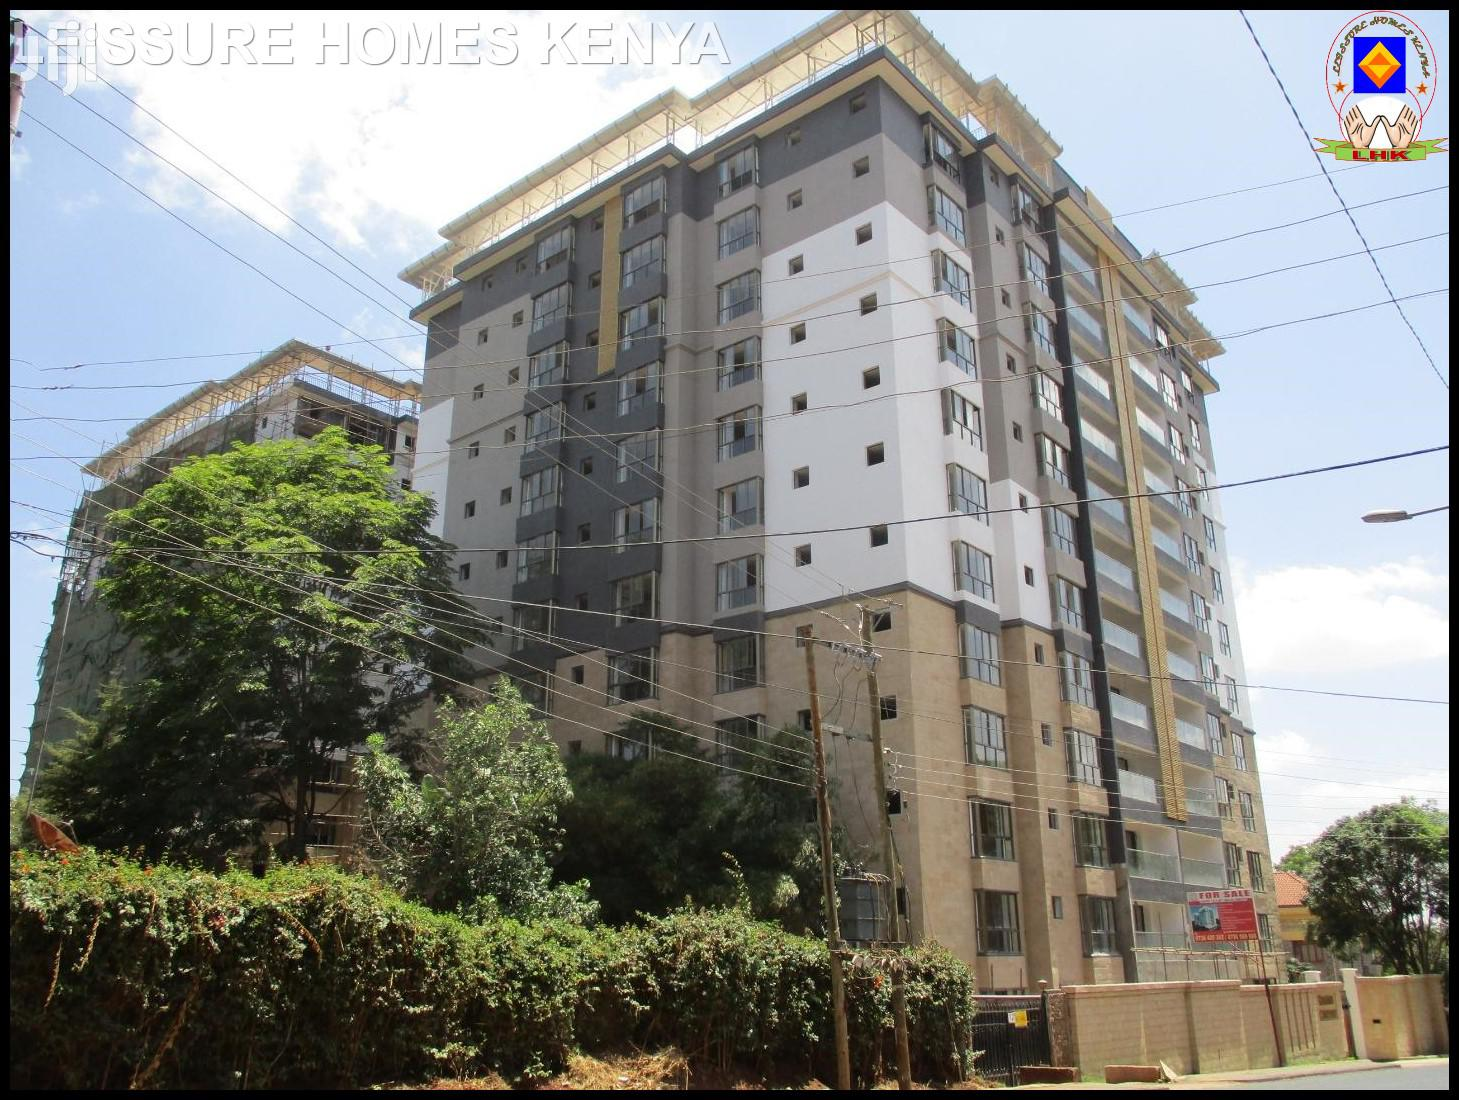 3 Bedroom All Ensuite Modern Apartment With Sq in Kileleshwa